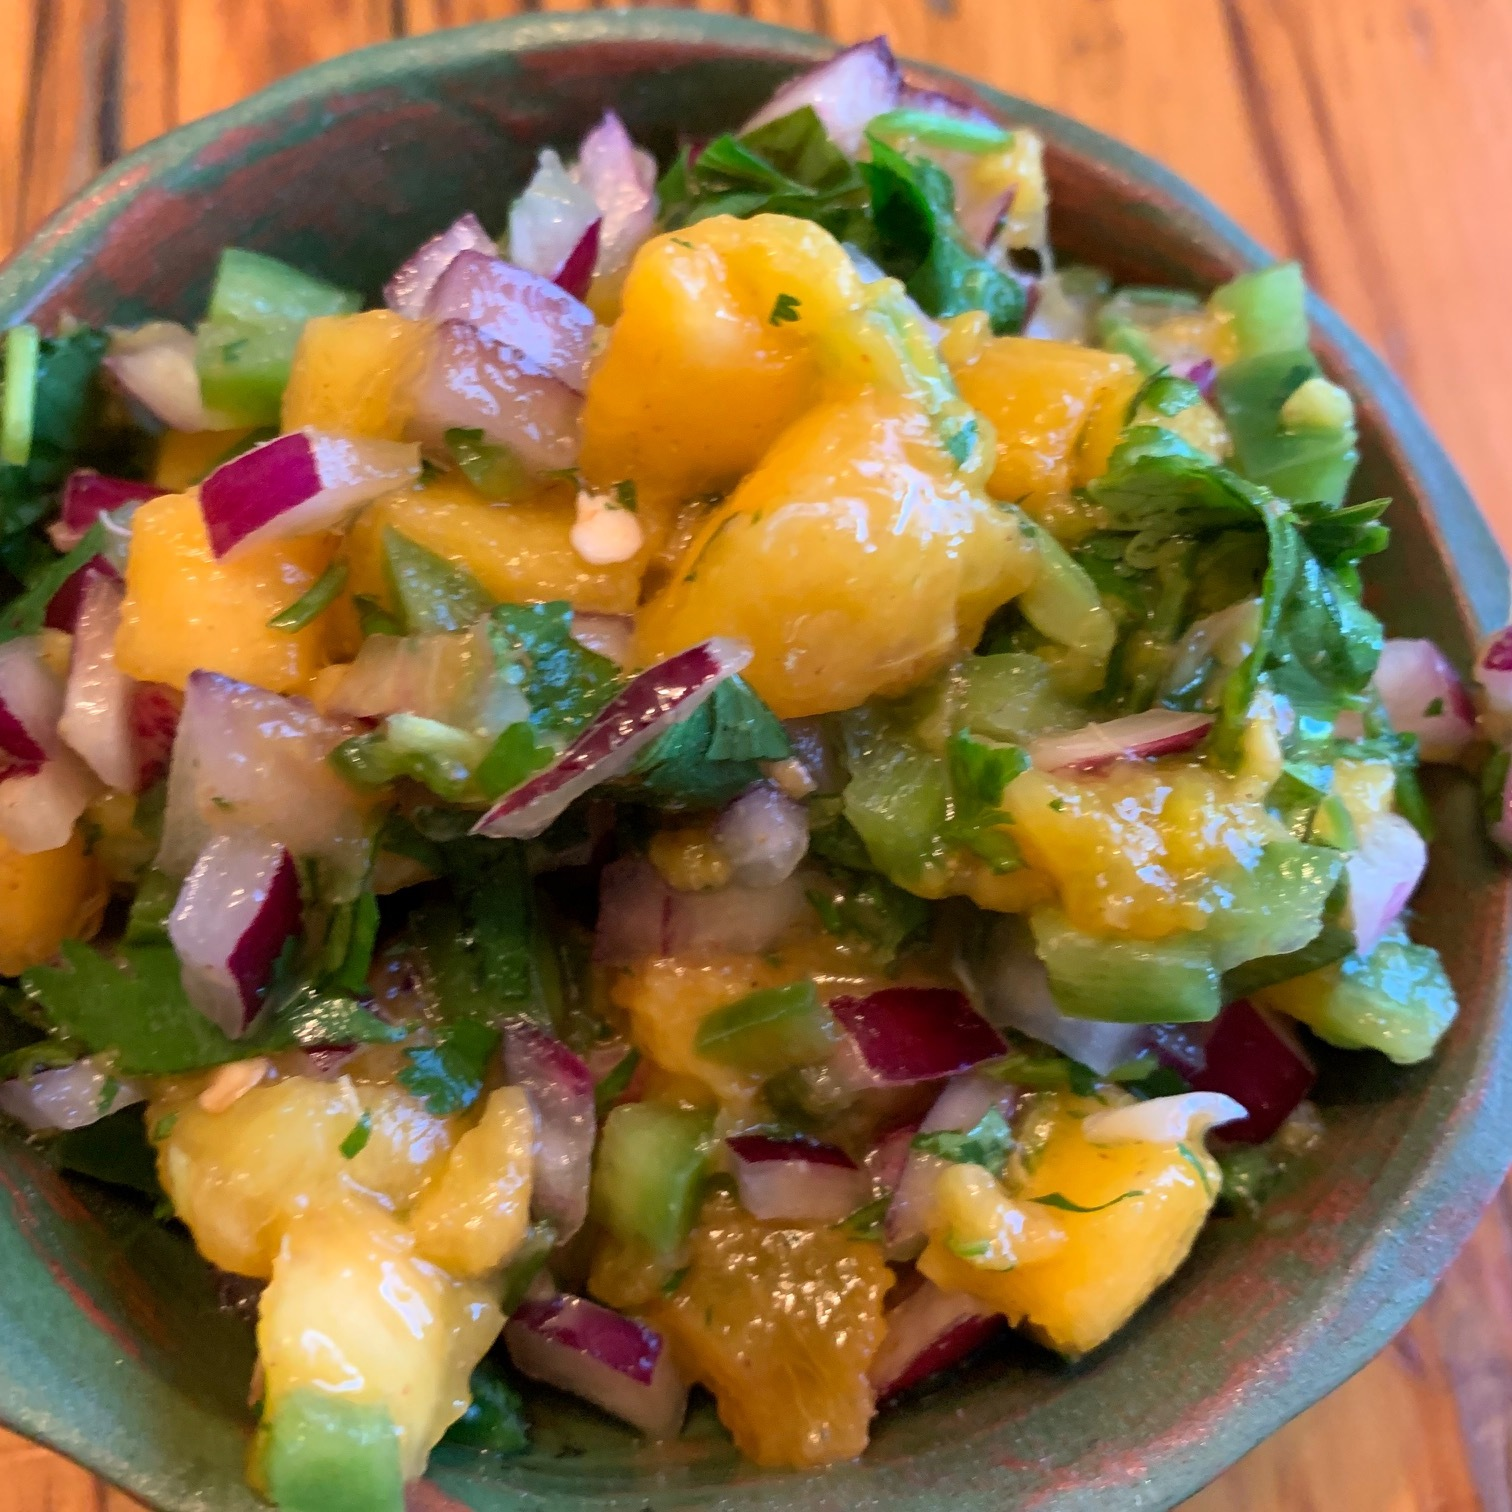 Simple fresh ingredients make a beautiful salsa- peaches, onions, cilantro jalapeno and lime juice